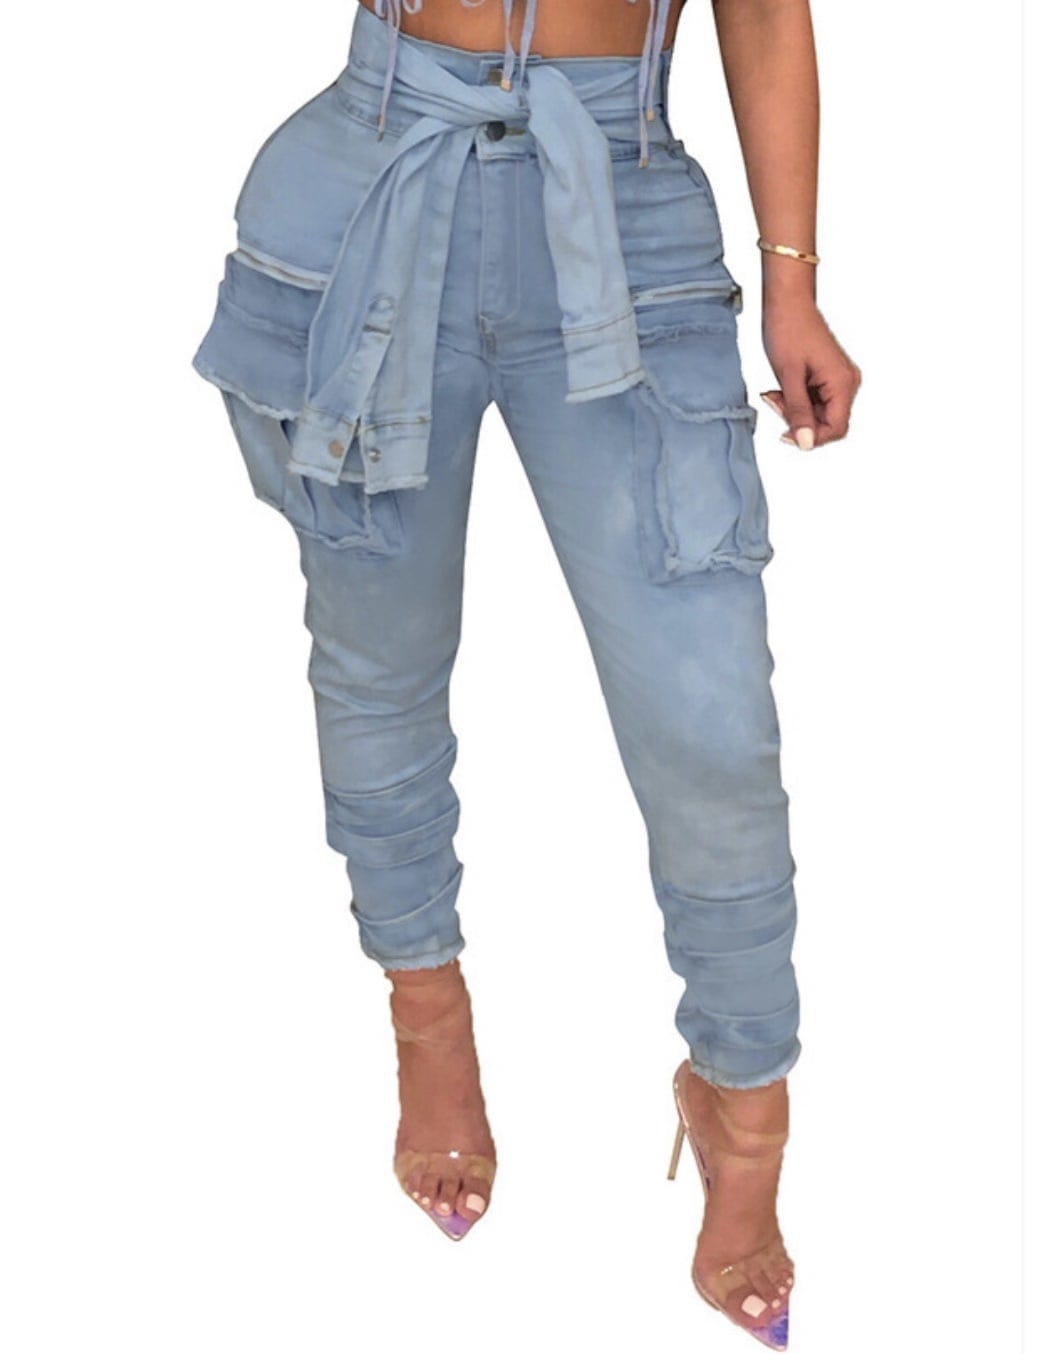 MoSleeves Cargo Jeans